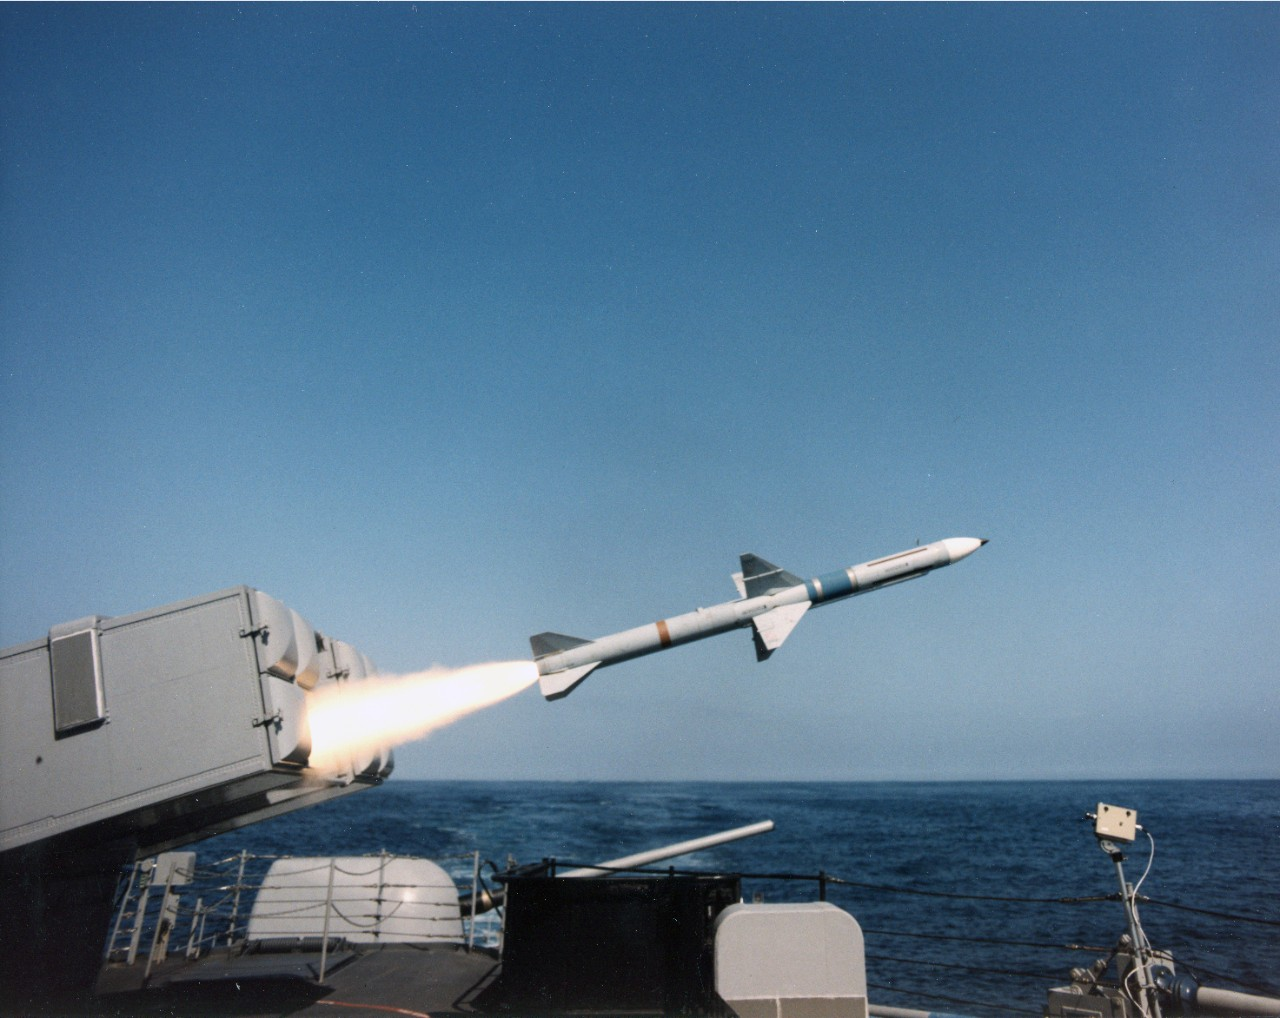 Launching of a Sea Sparrow missile. Unknown ship and date.